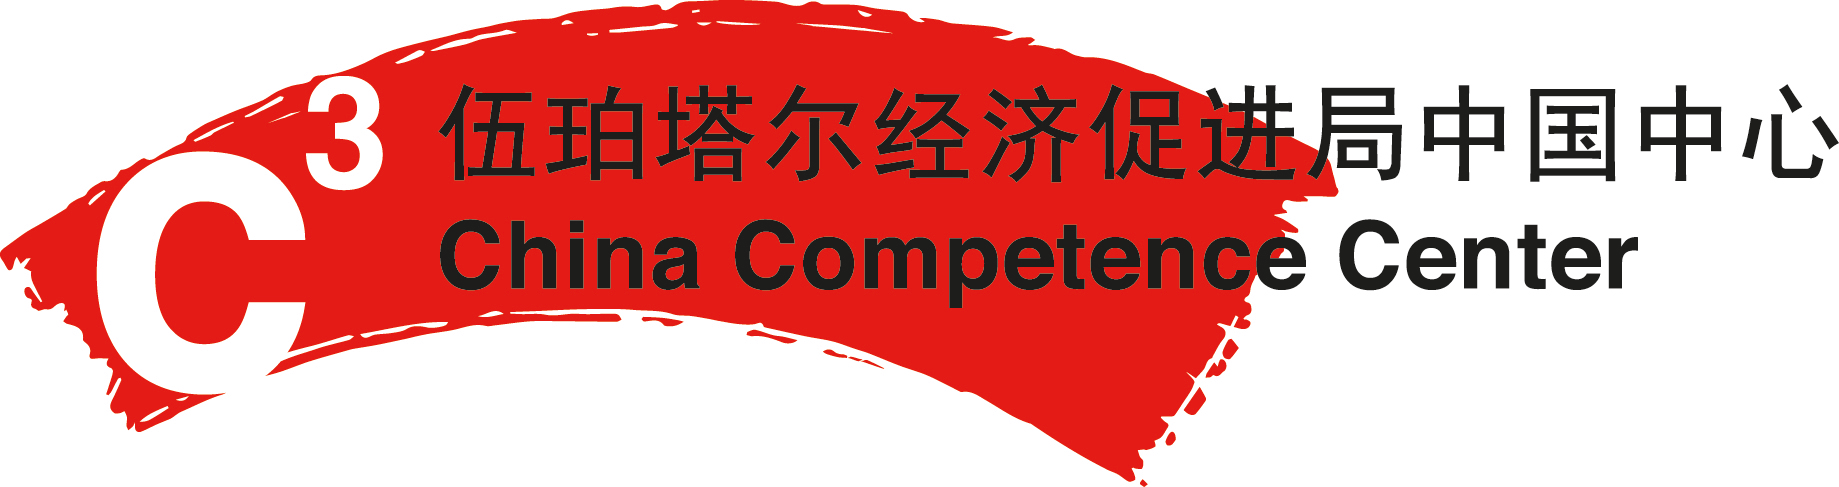 China Competence Center